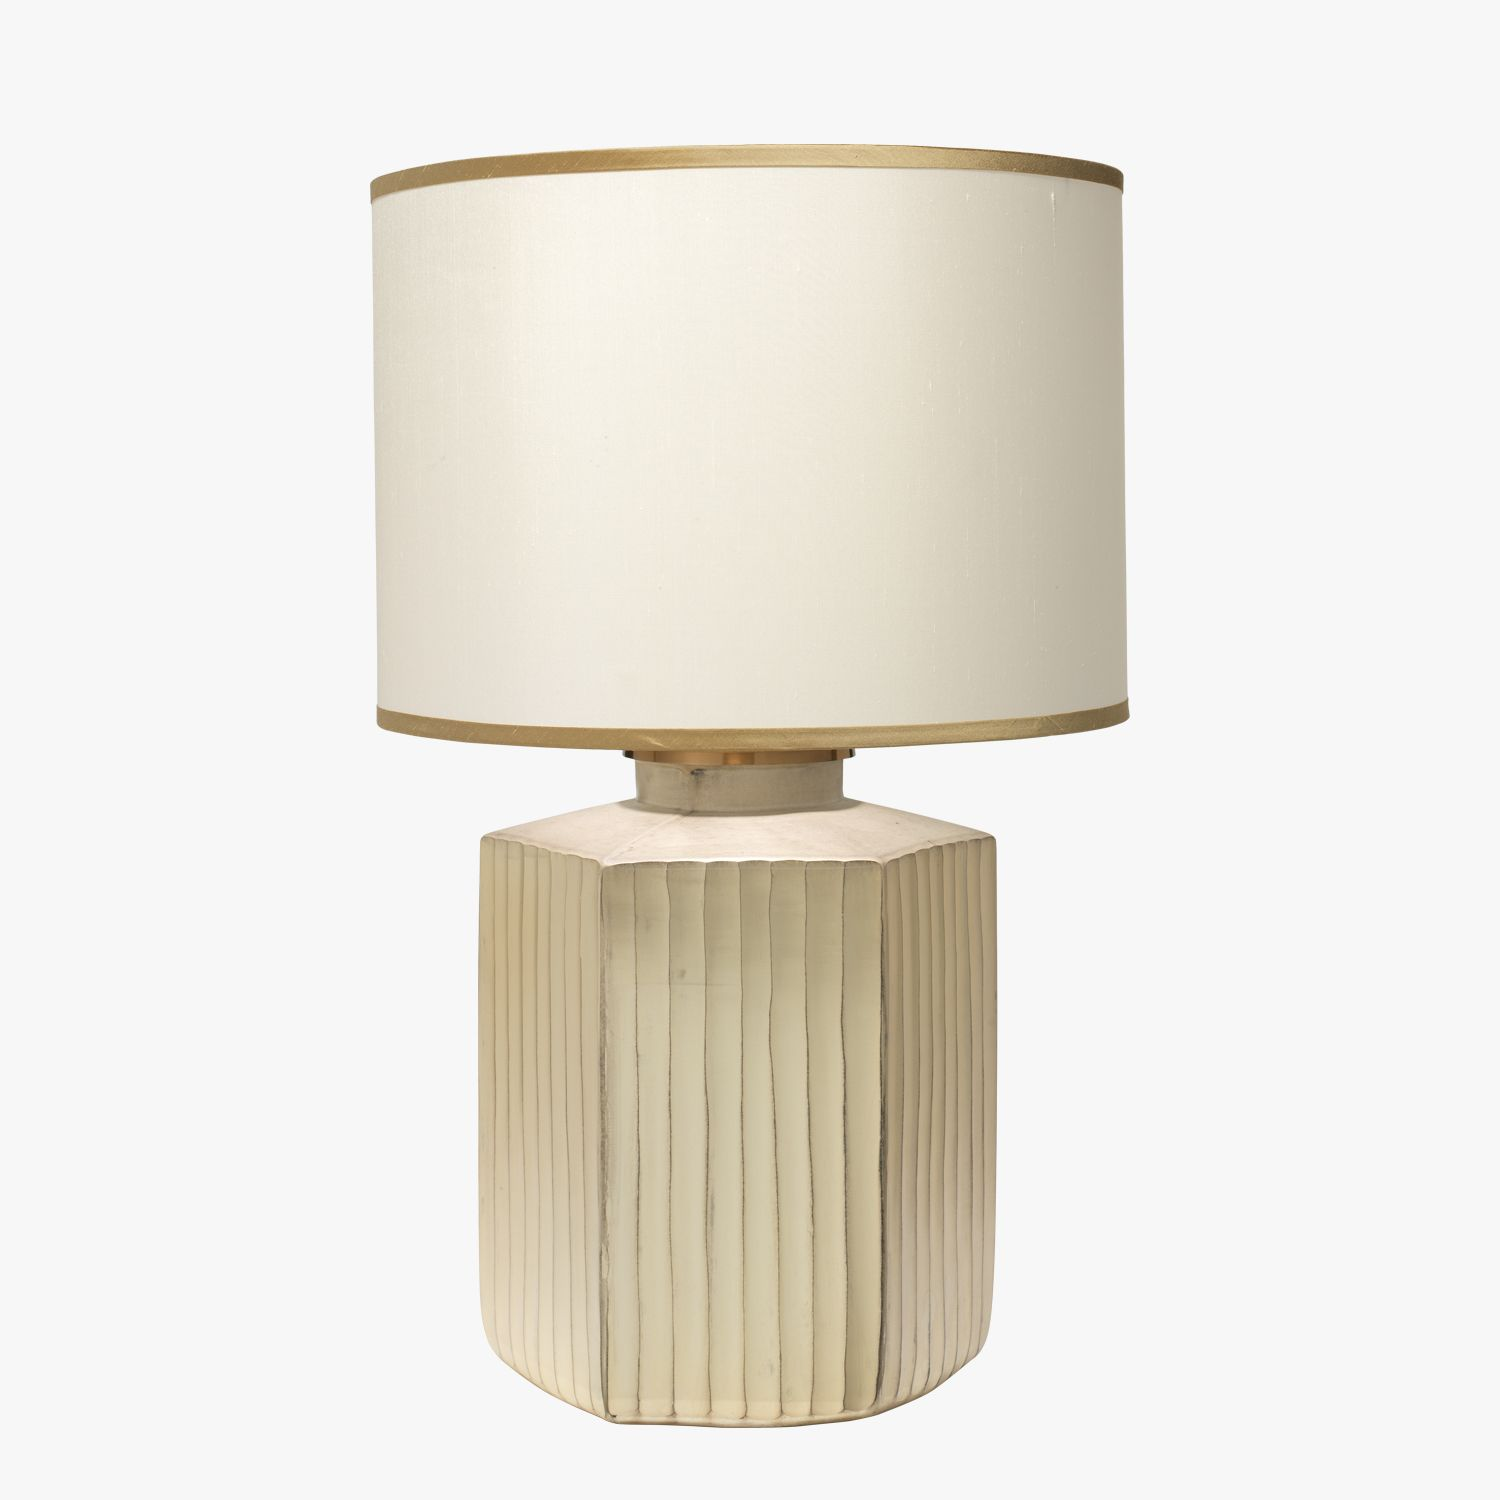 Our Anders Frosted Glass Lamp Features A Stylish Oversized Hexagon Shape With A Soft Gold Frosted Finish This Chic Table L Lamp Home Decor Styles Unique Lamps